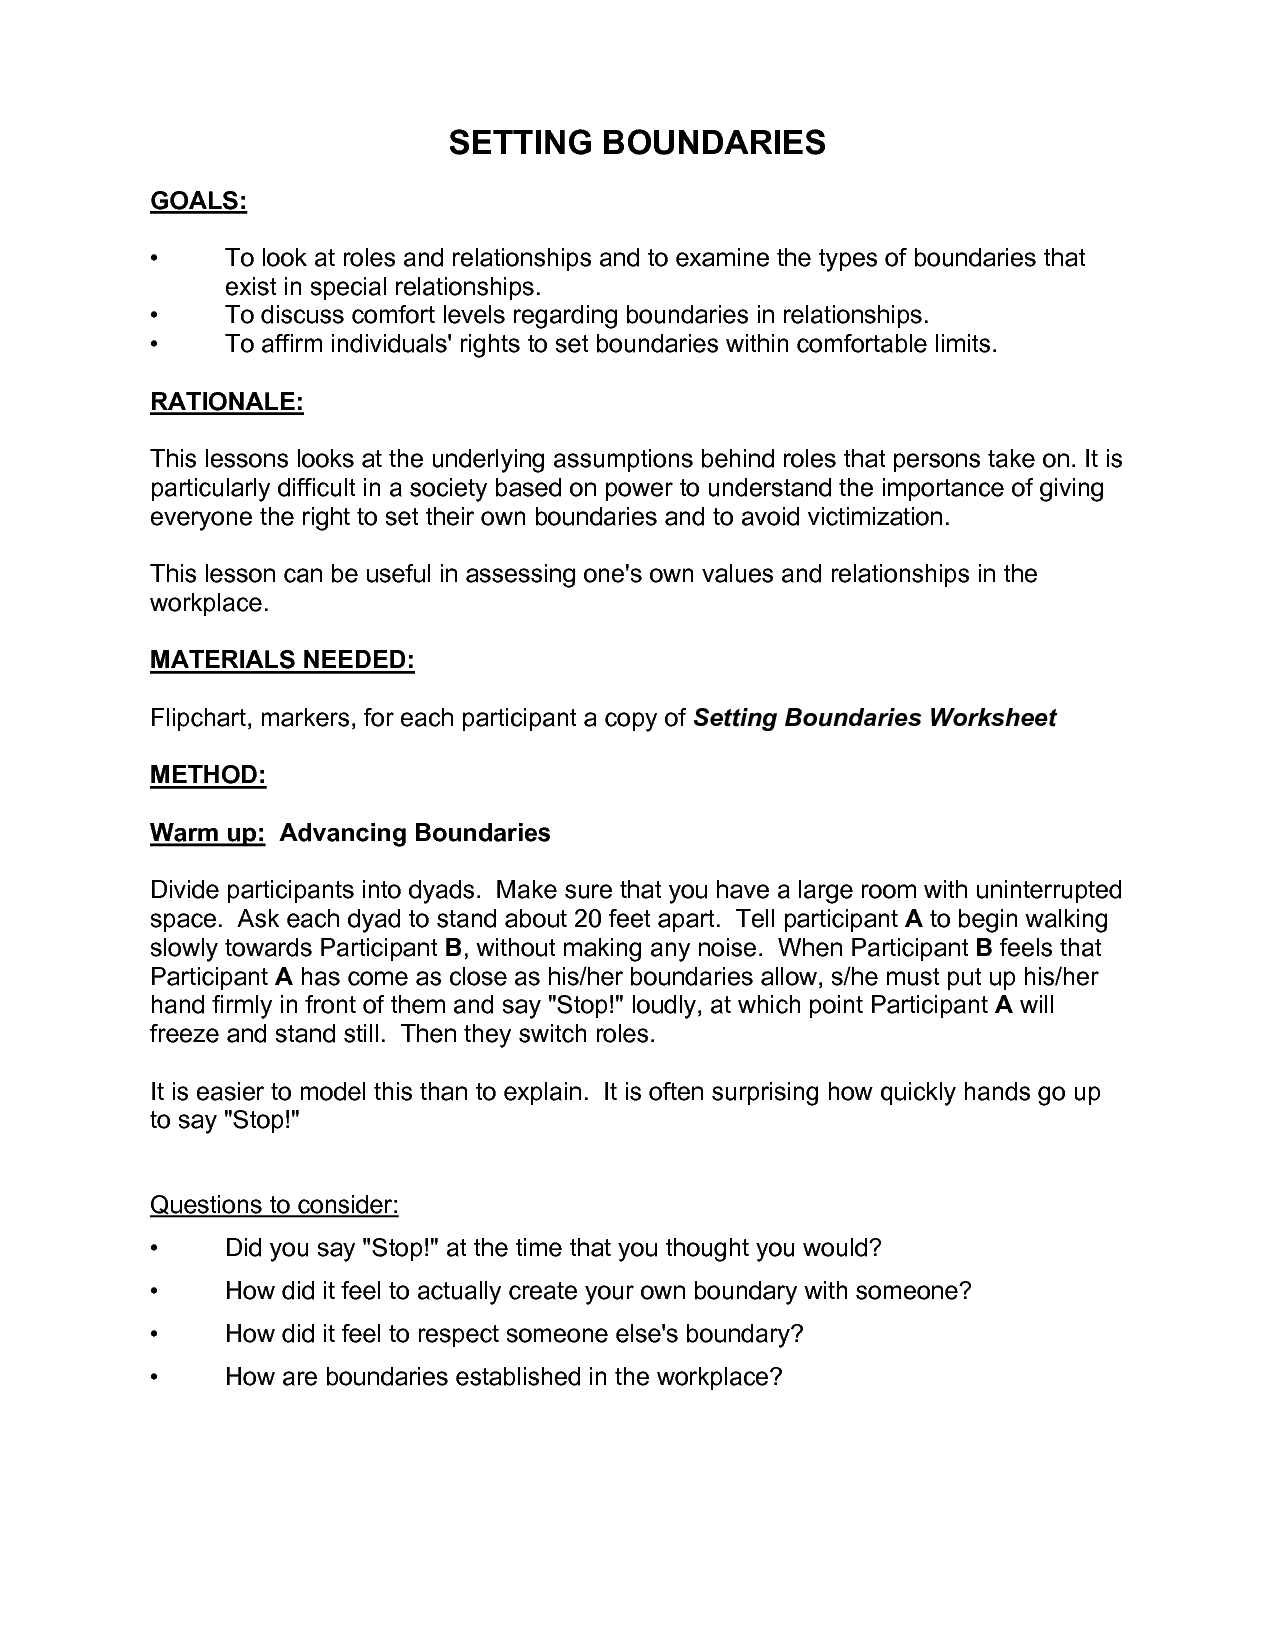 HealthyBoundariesWorksheet – Healthy Relationships Worksheet